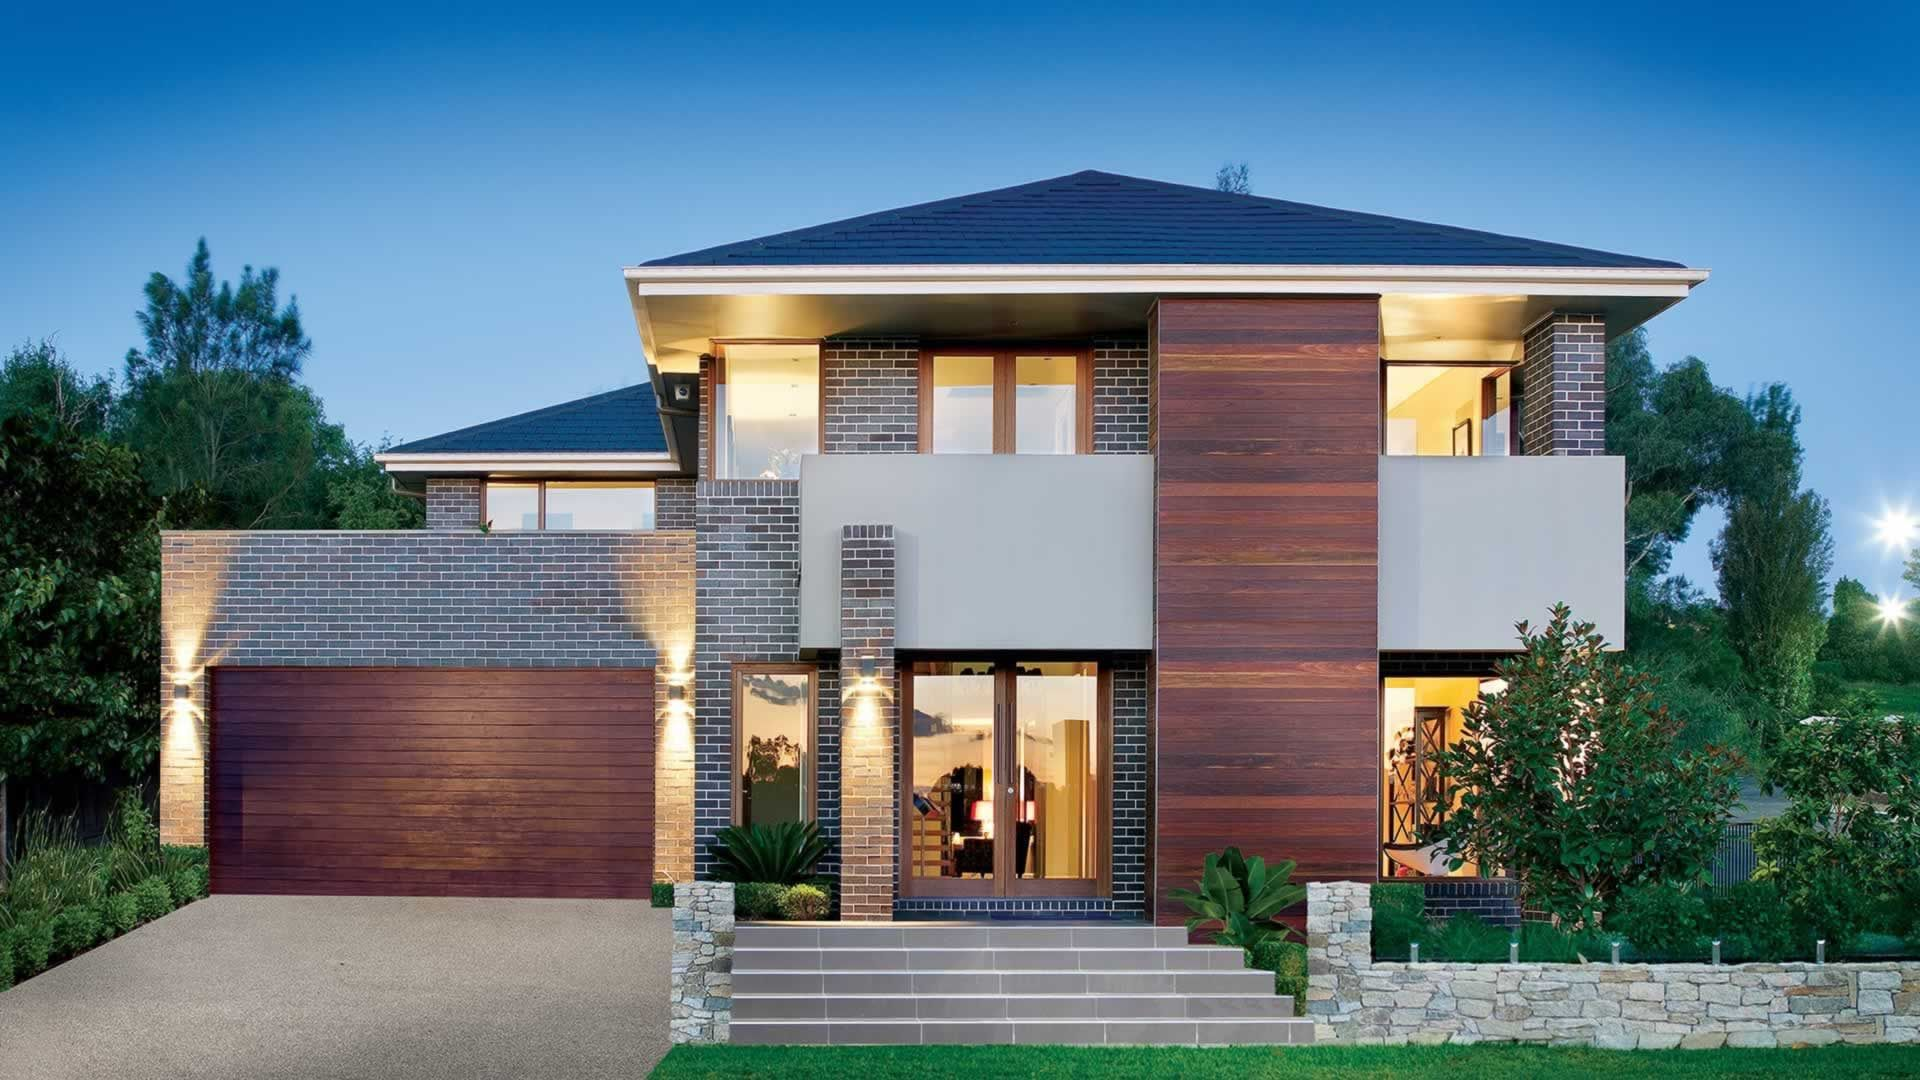 Waldorf - Prestige Series | Eden Brae Homes | Home - Facade ...